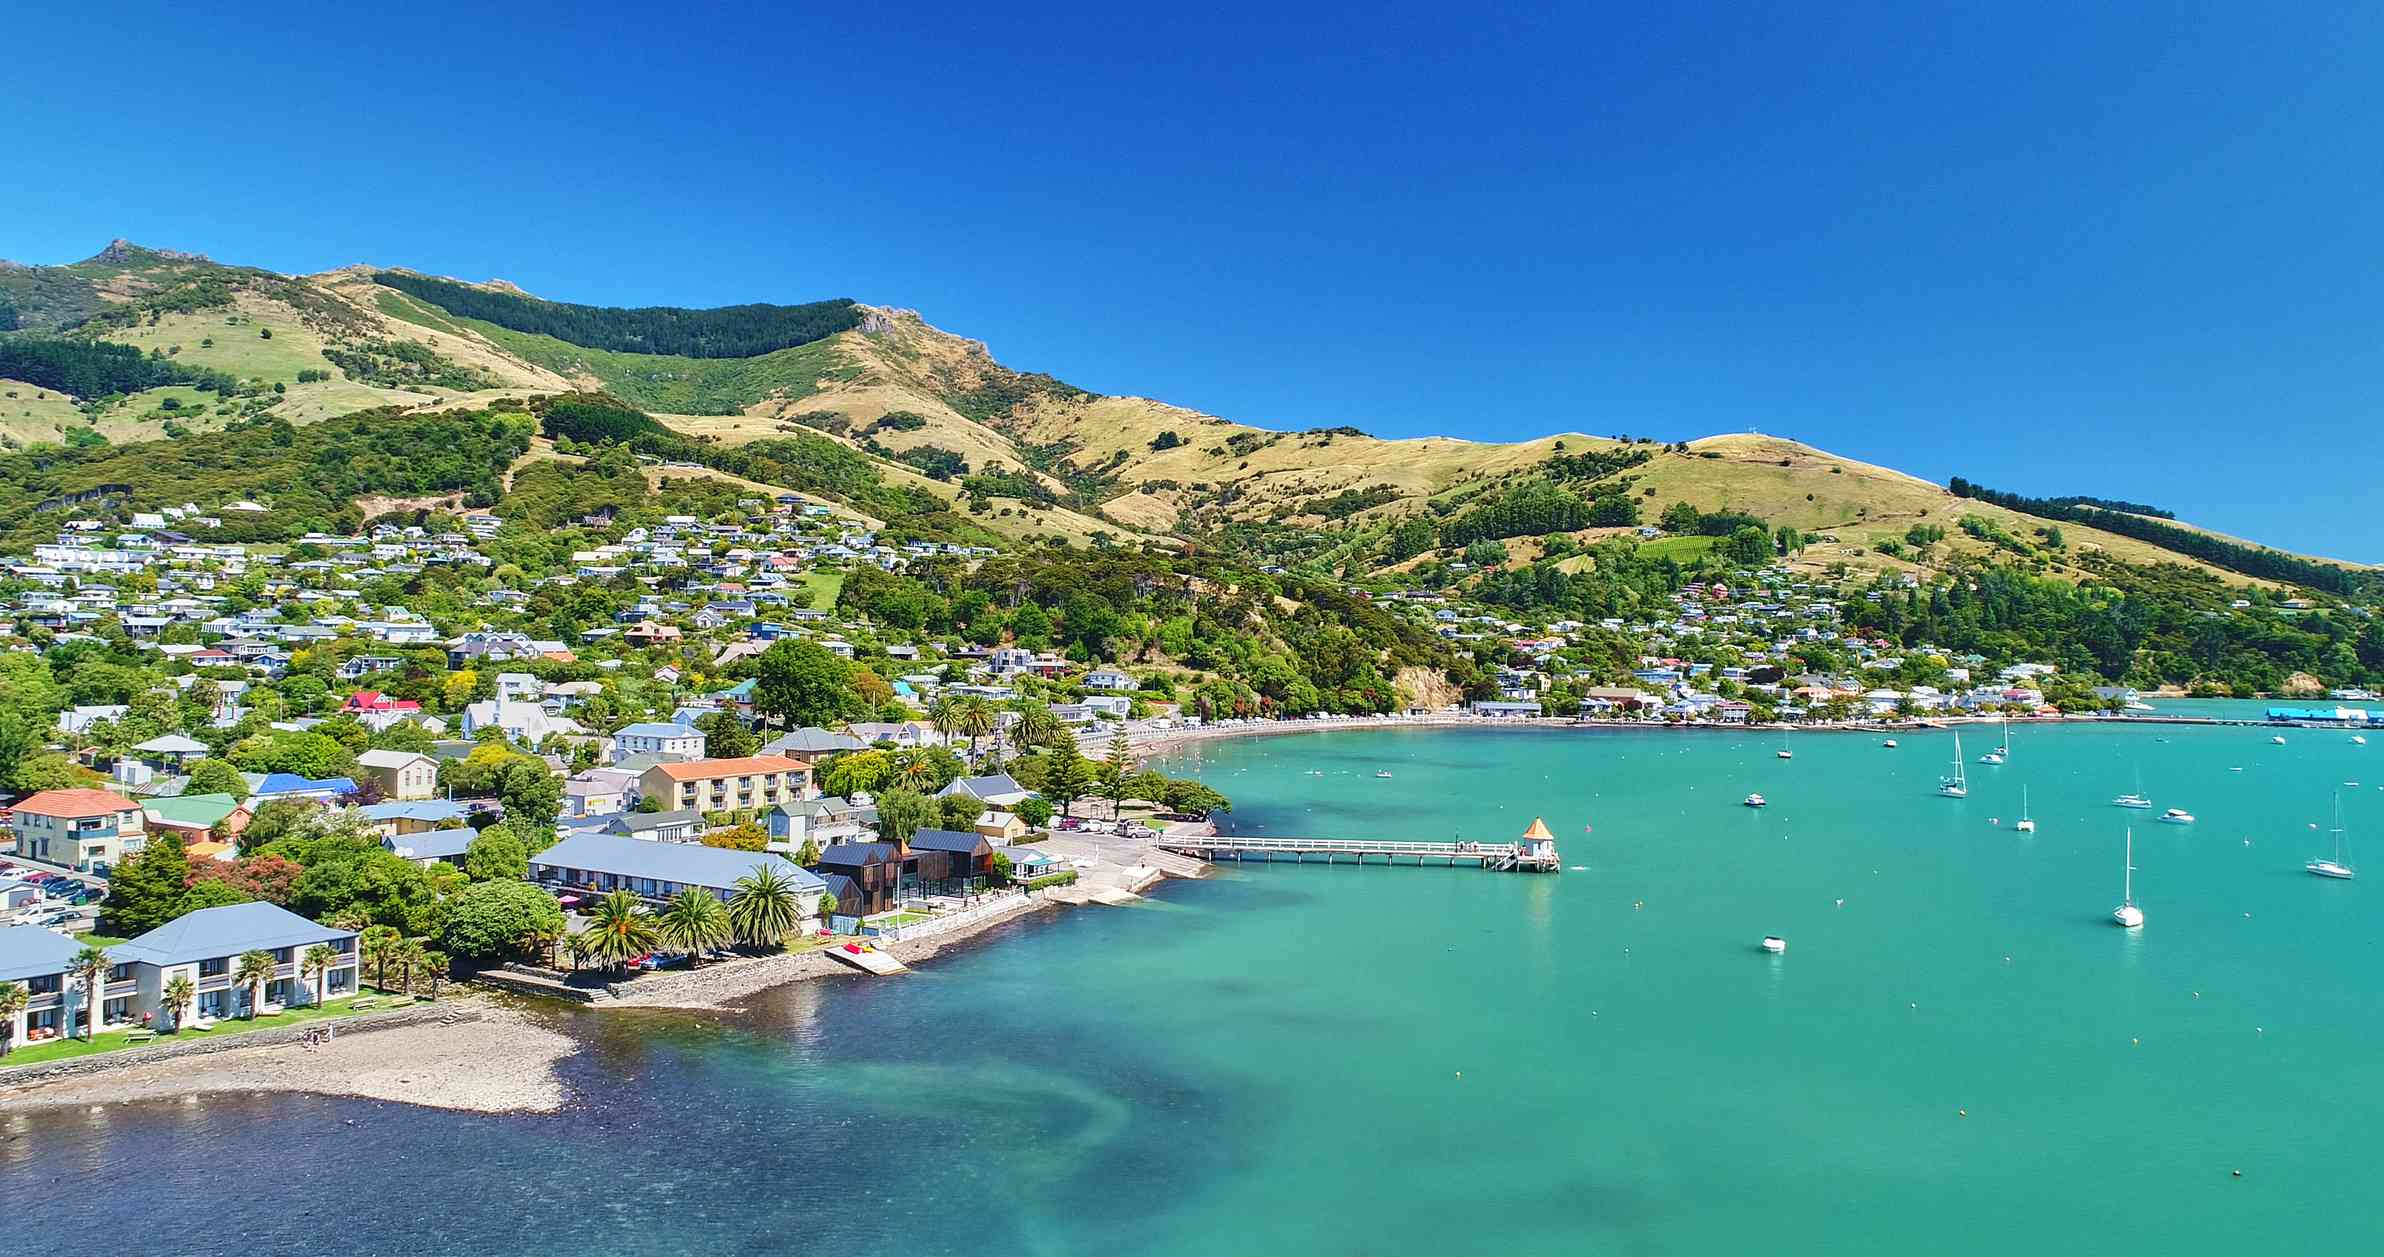 view of brigh blue water and town on the shoreline in New Zealand